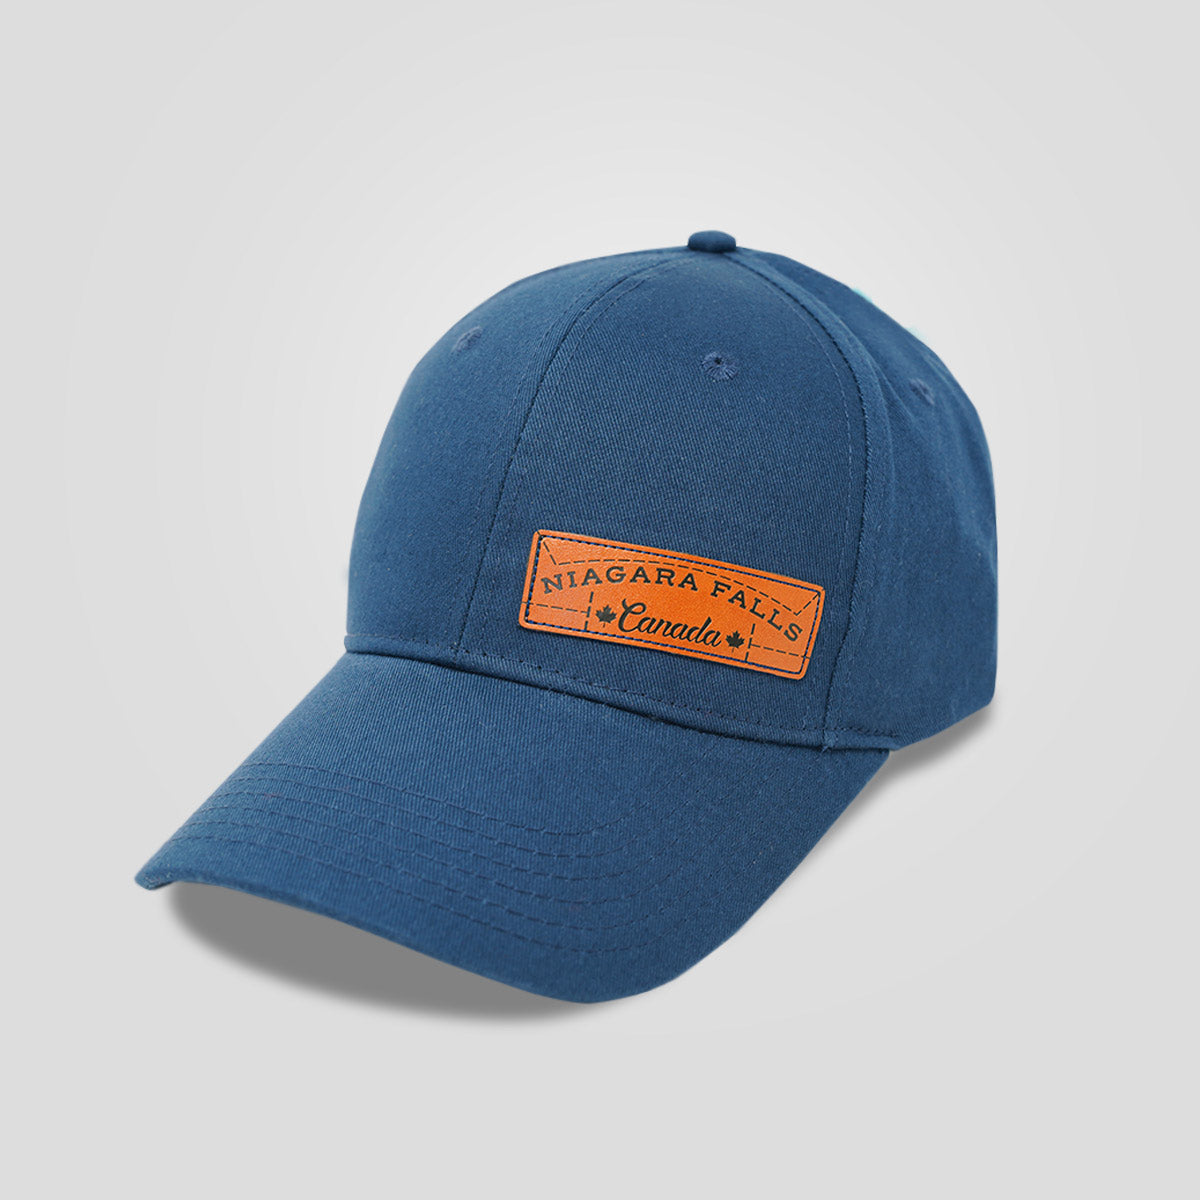 Niagara Falls Canada Leather Patch Hat